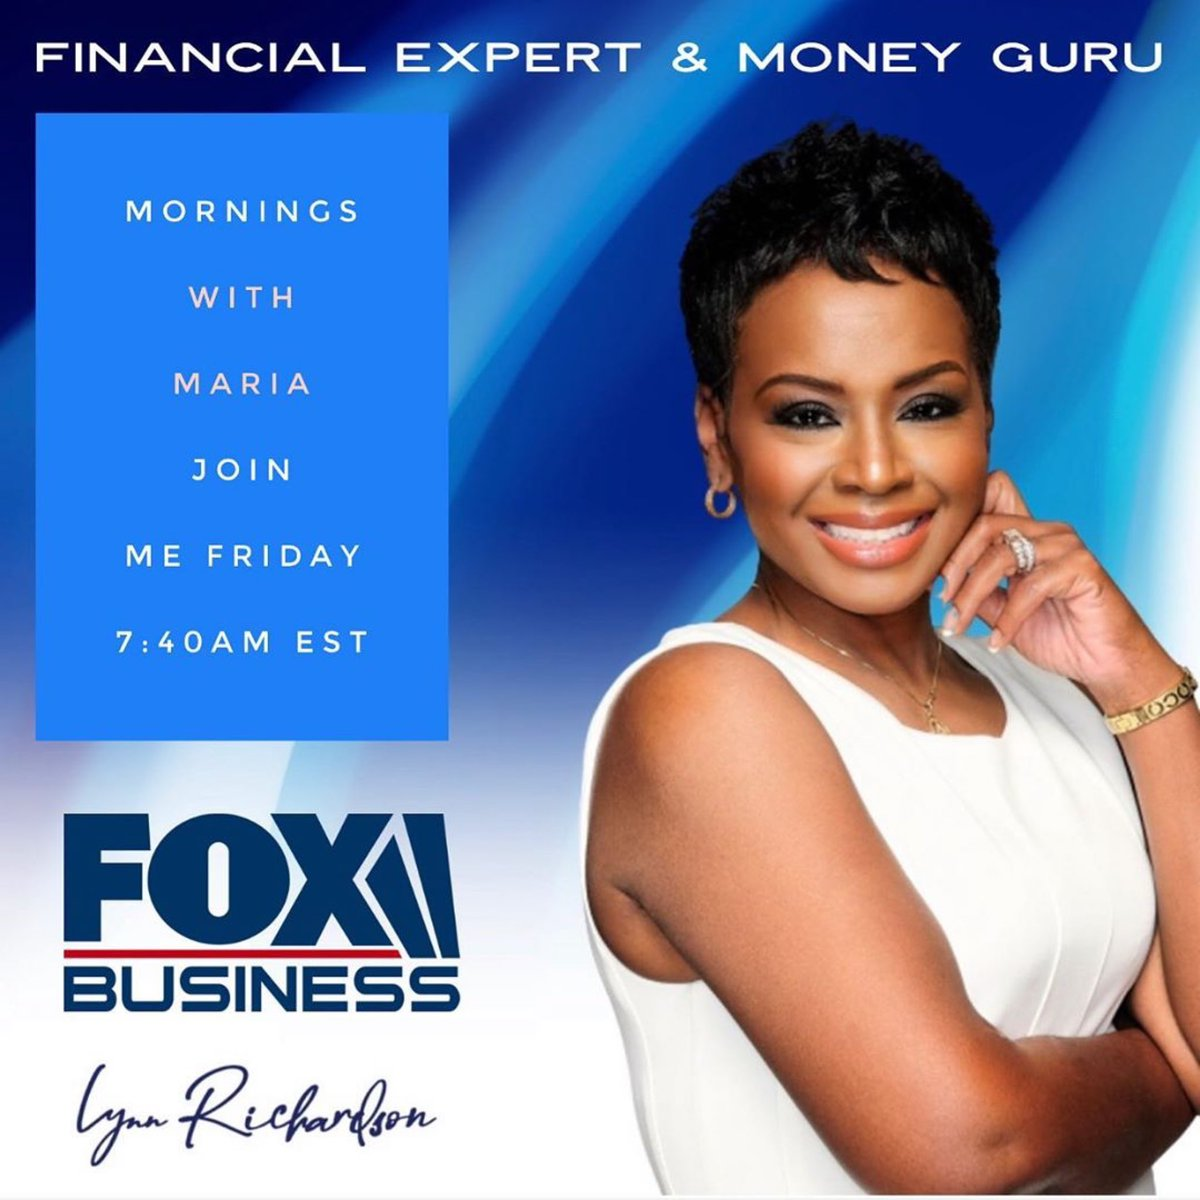 Watch @lynnrichardson FRIDAY morning 7am Est @FoxBusiness #Mariainthemornings   For tips on how to get your money straight! https://t.co/4RyOnCwAKF